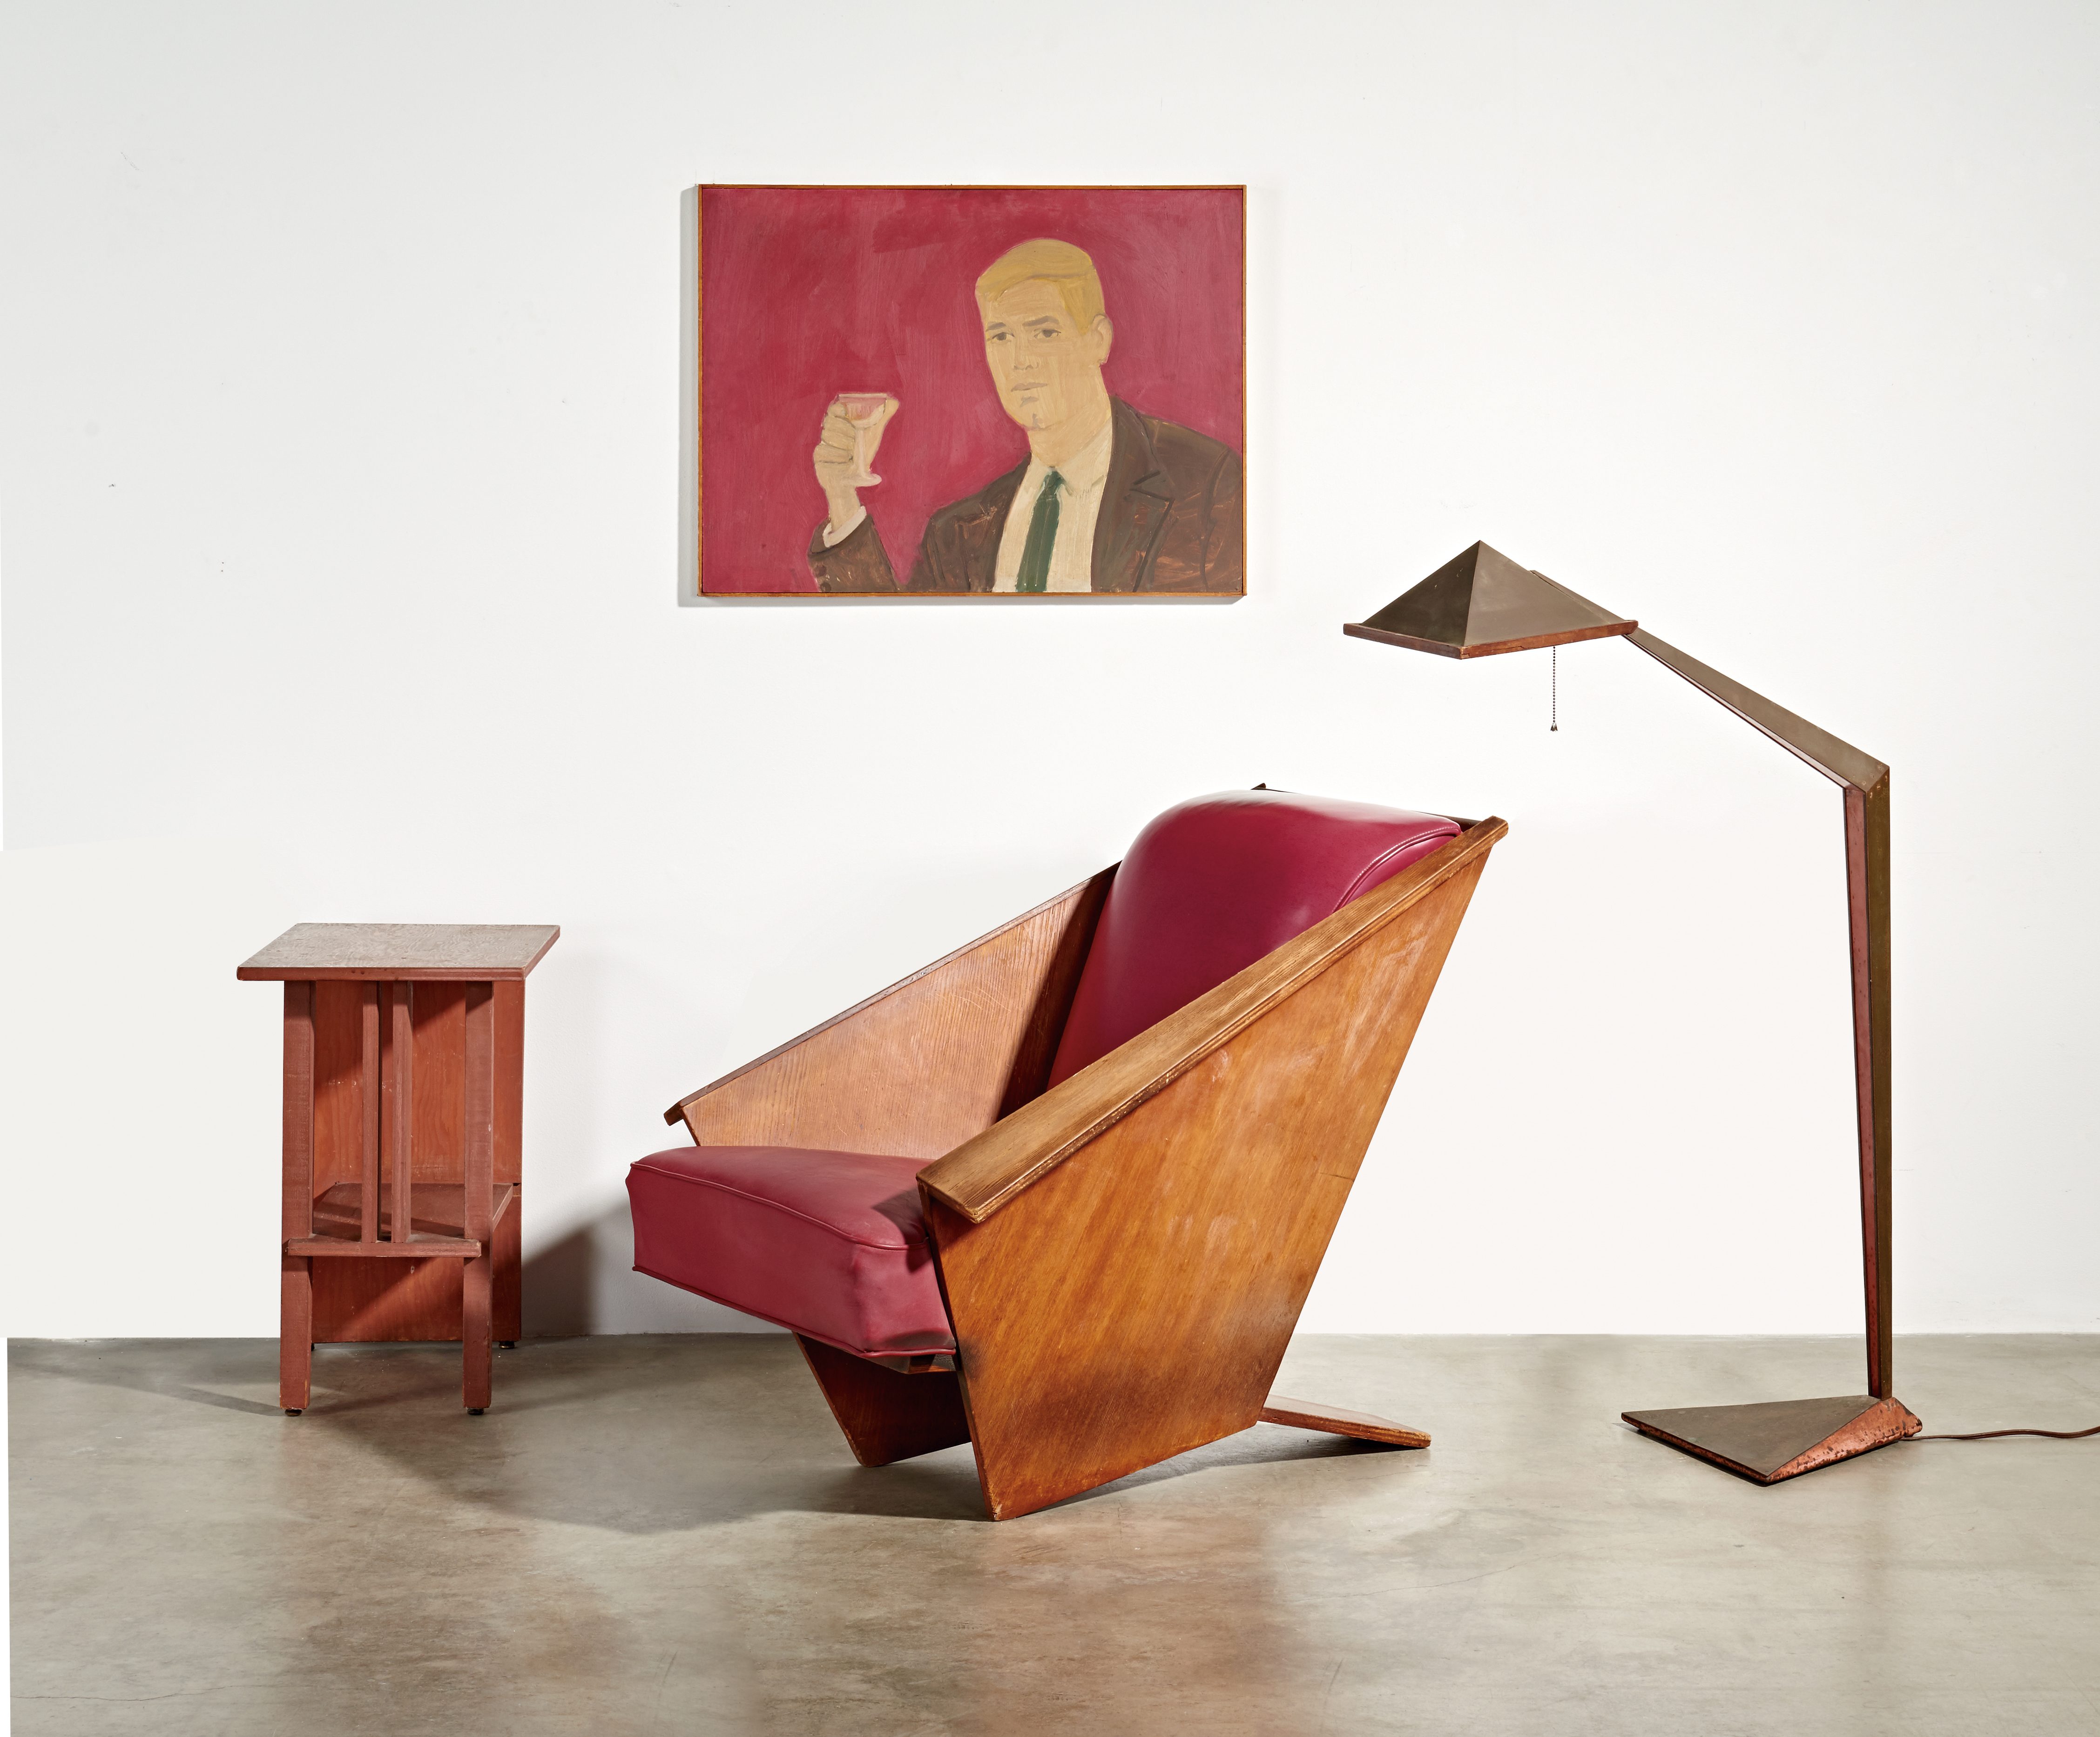 """""""Origami"""" lounge chair, """"Origami"""" lamp, and side table. Art by Alex Katz """"Here's to You"""" (1962), all to be sold at auction to benefit The Bridges/Larson Foundation."""